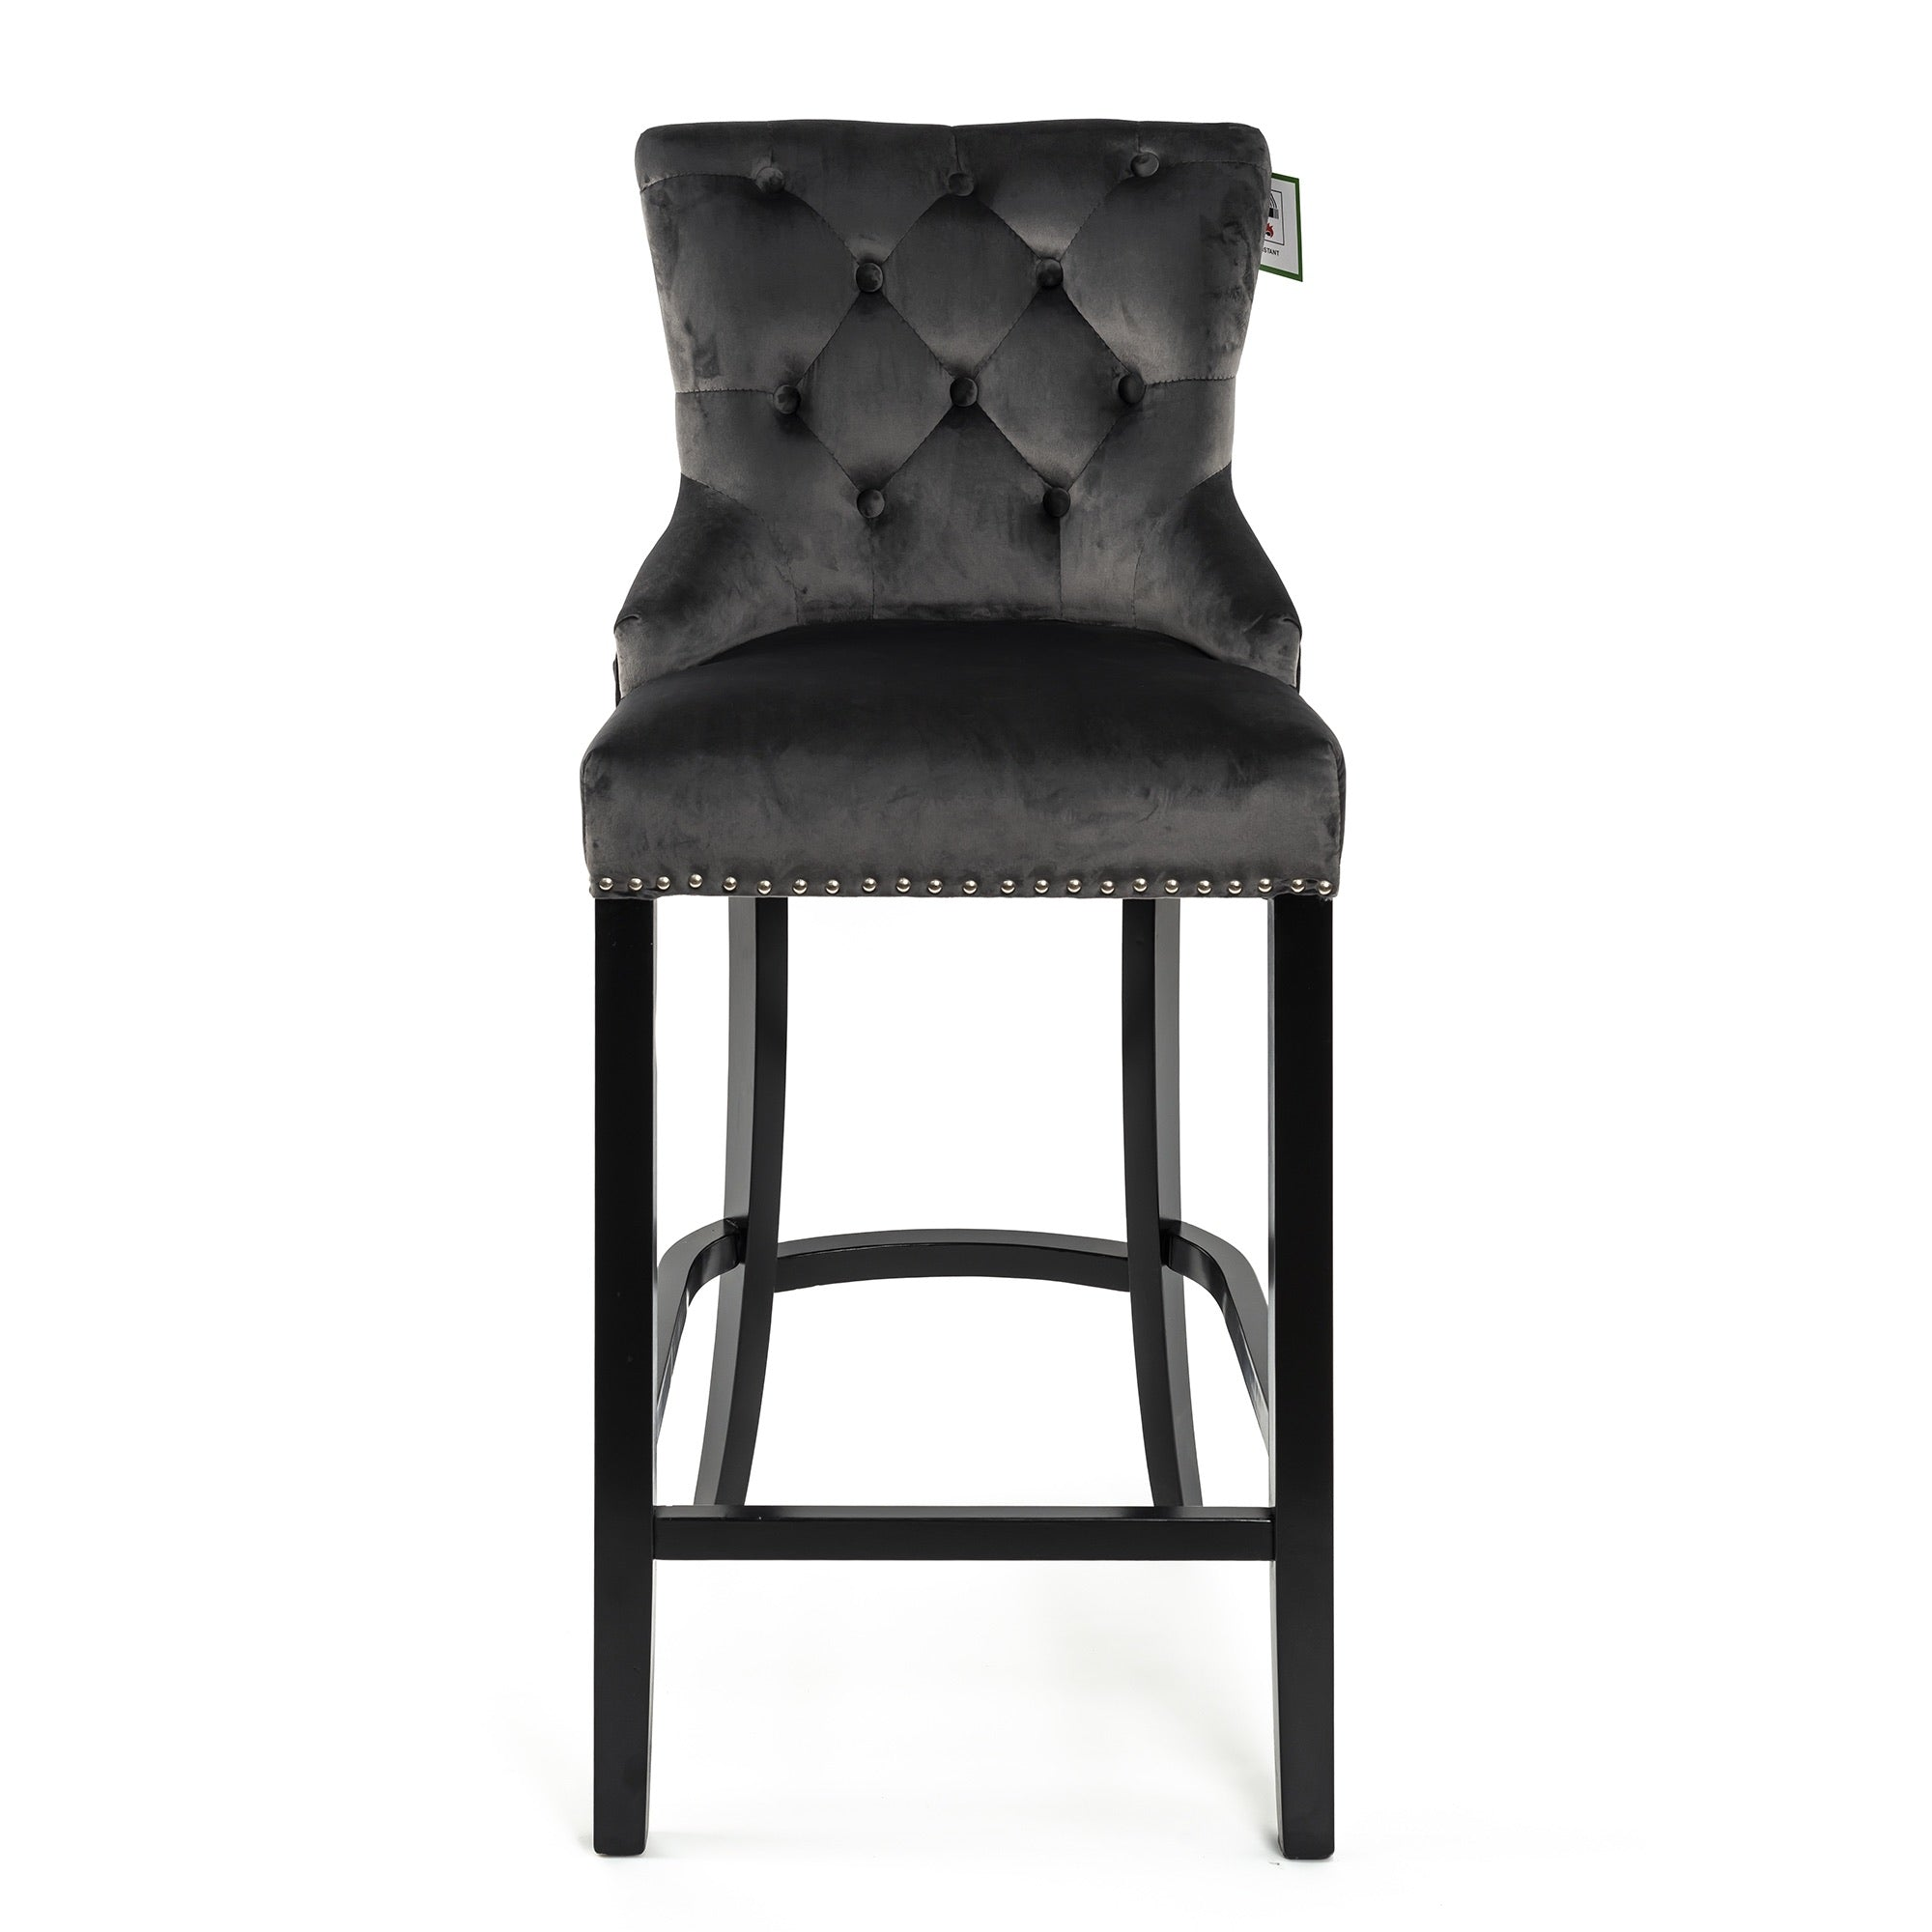 Dark grey velvet With Round Knocker and Oak legs